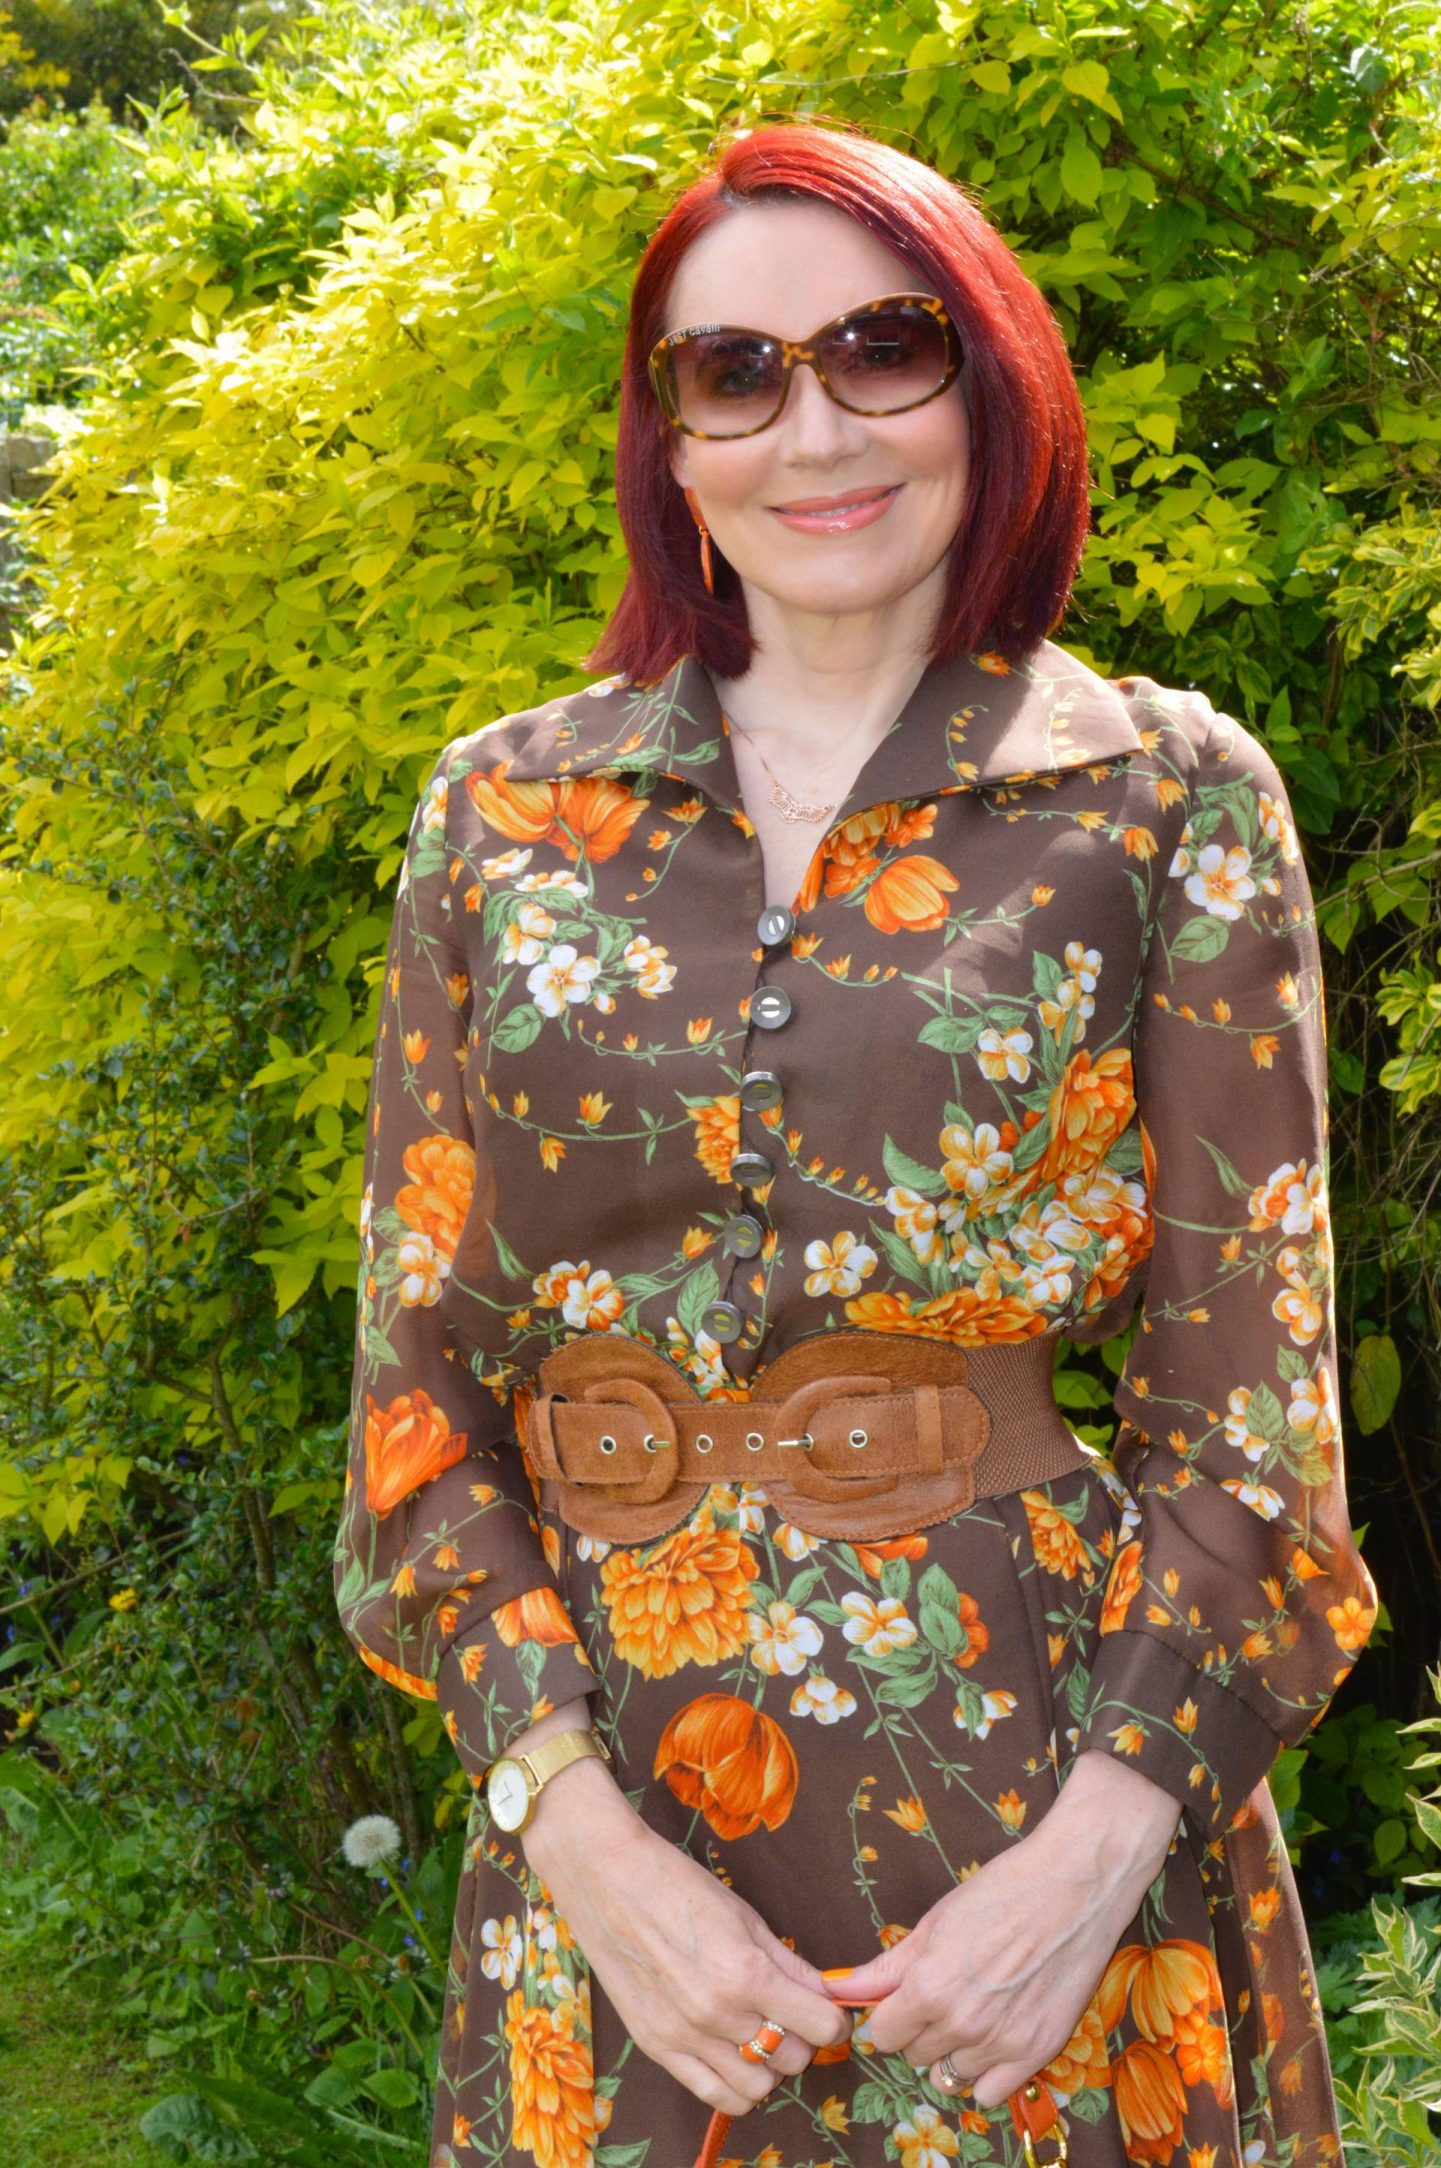 Wearing Pre-loved Floral Prints - May's Thrifty Six, vintage brown and orange floral print maxi dress